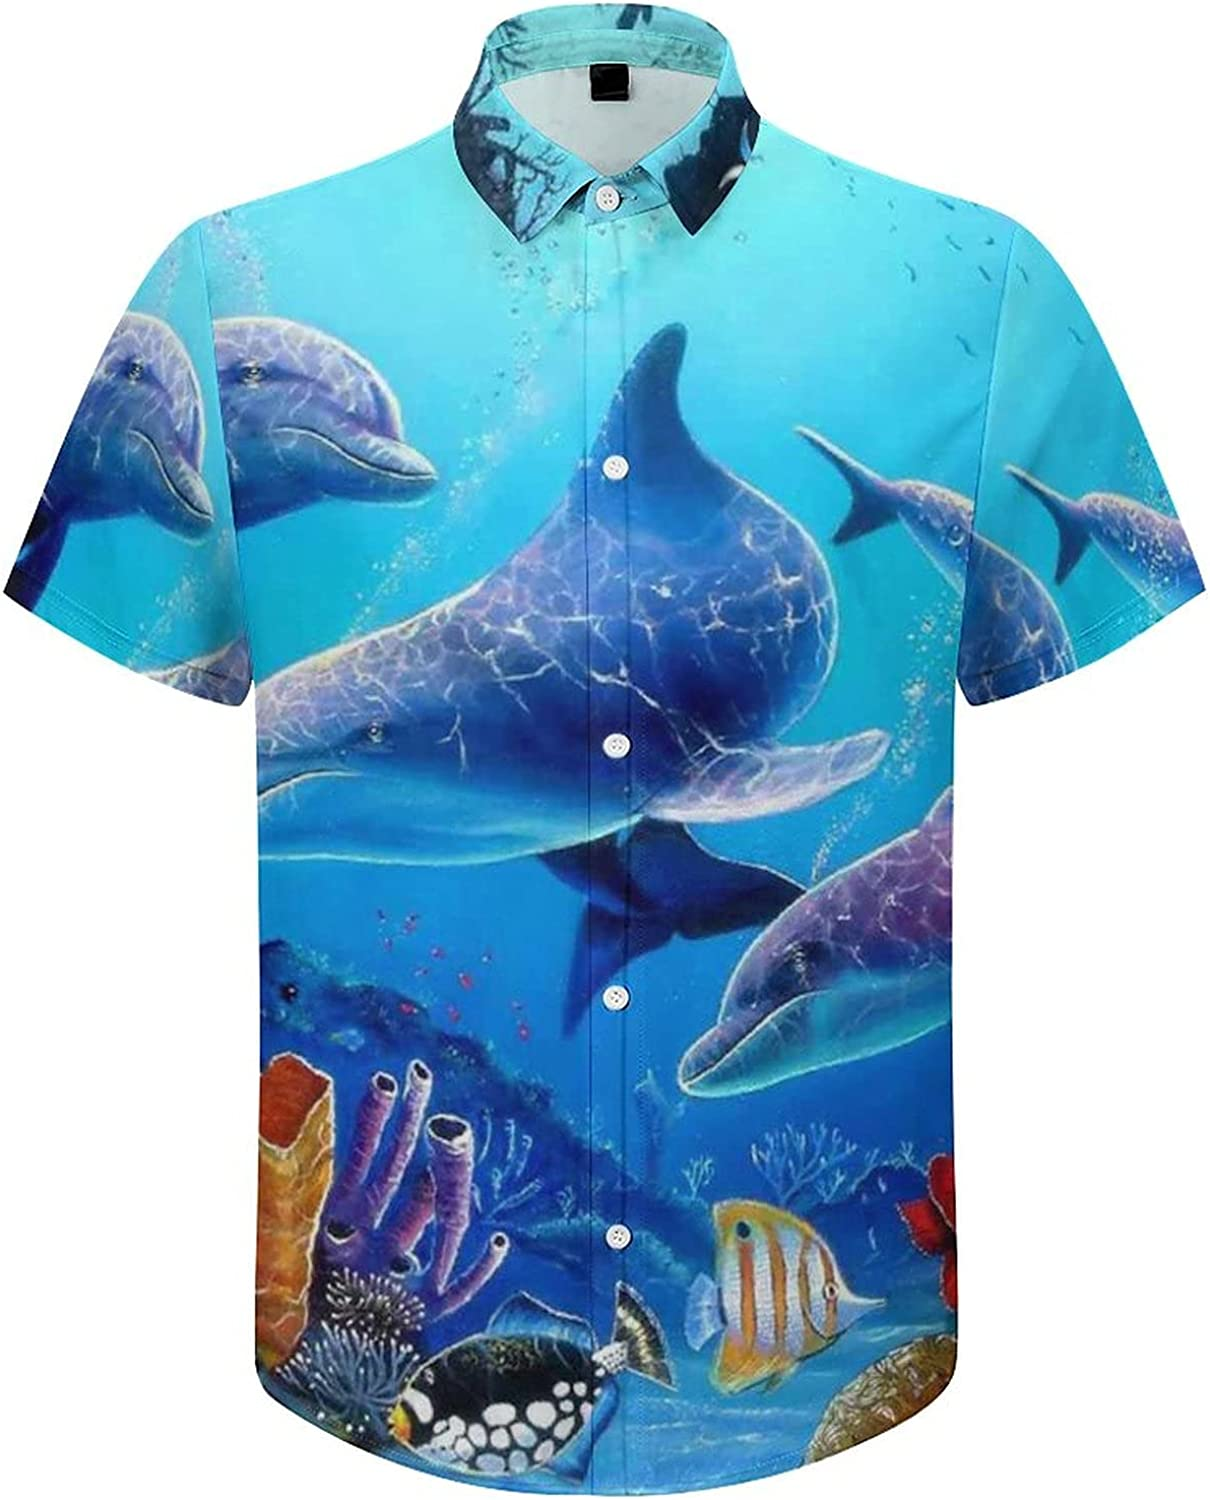 Men's Regular-Fit Short-Sleeve Printed Party Holiday Shirt Ocean Dolphin Colorful Fish